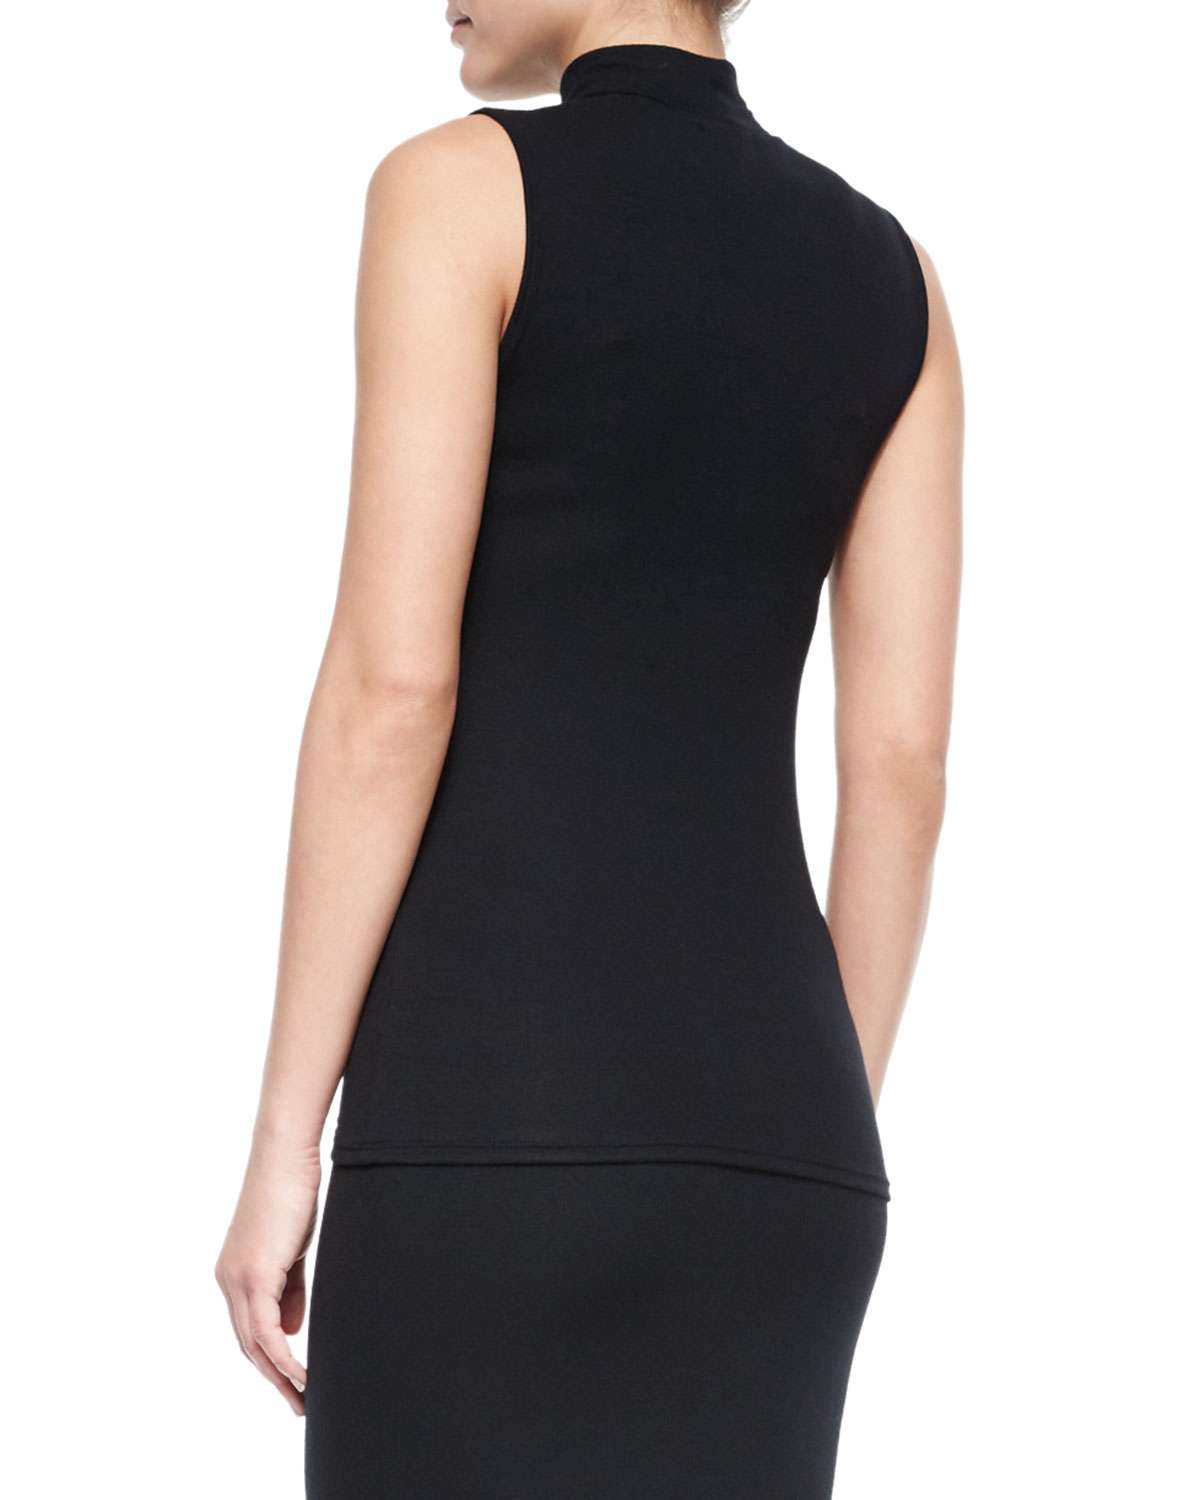 Atm Sleeveless Turtleneck Top In Black Lyst